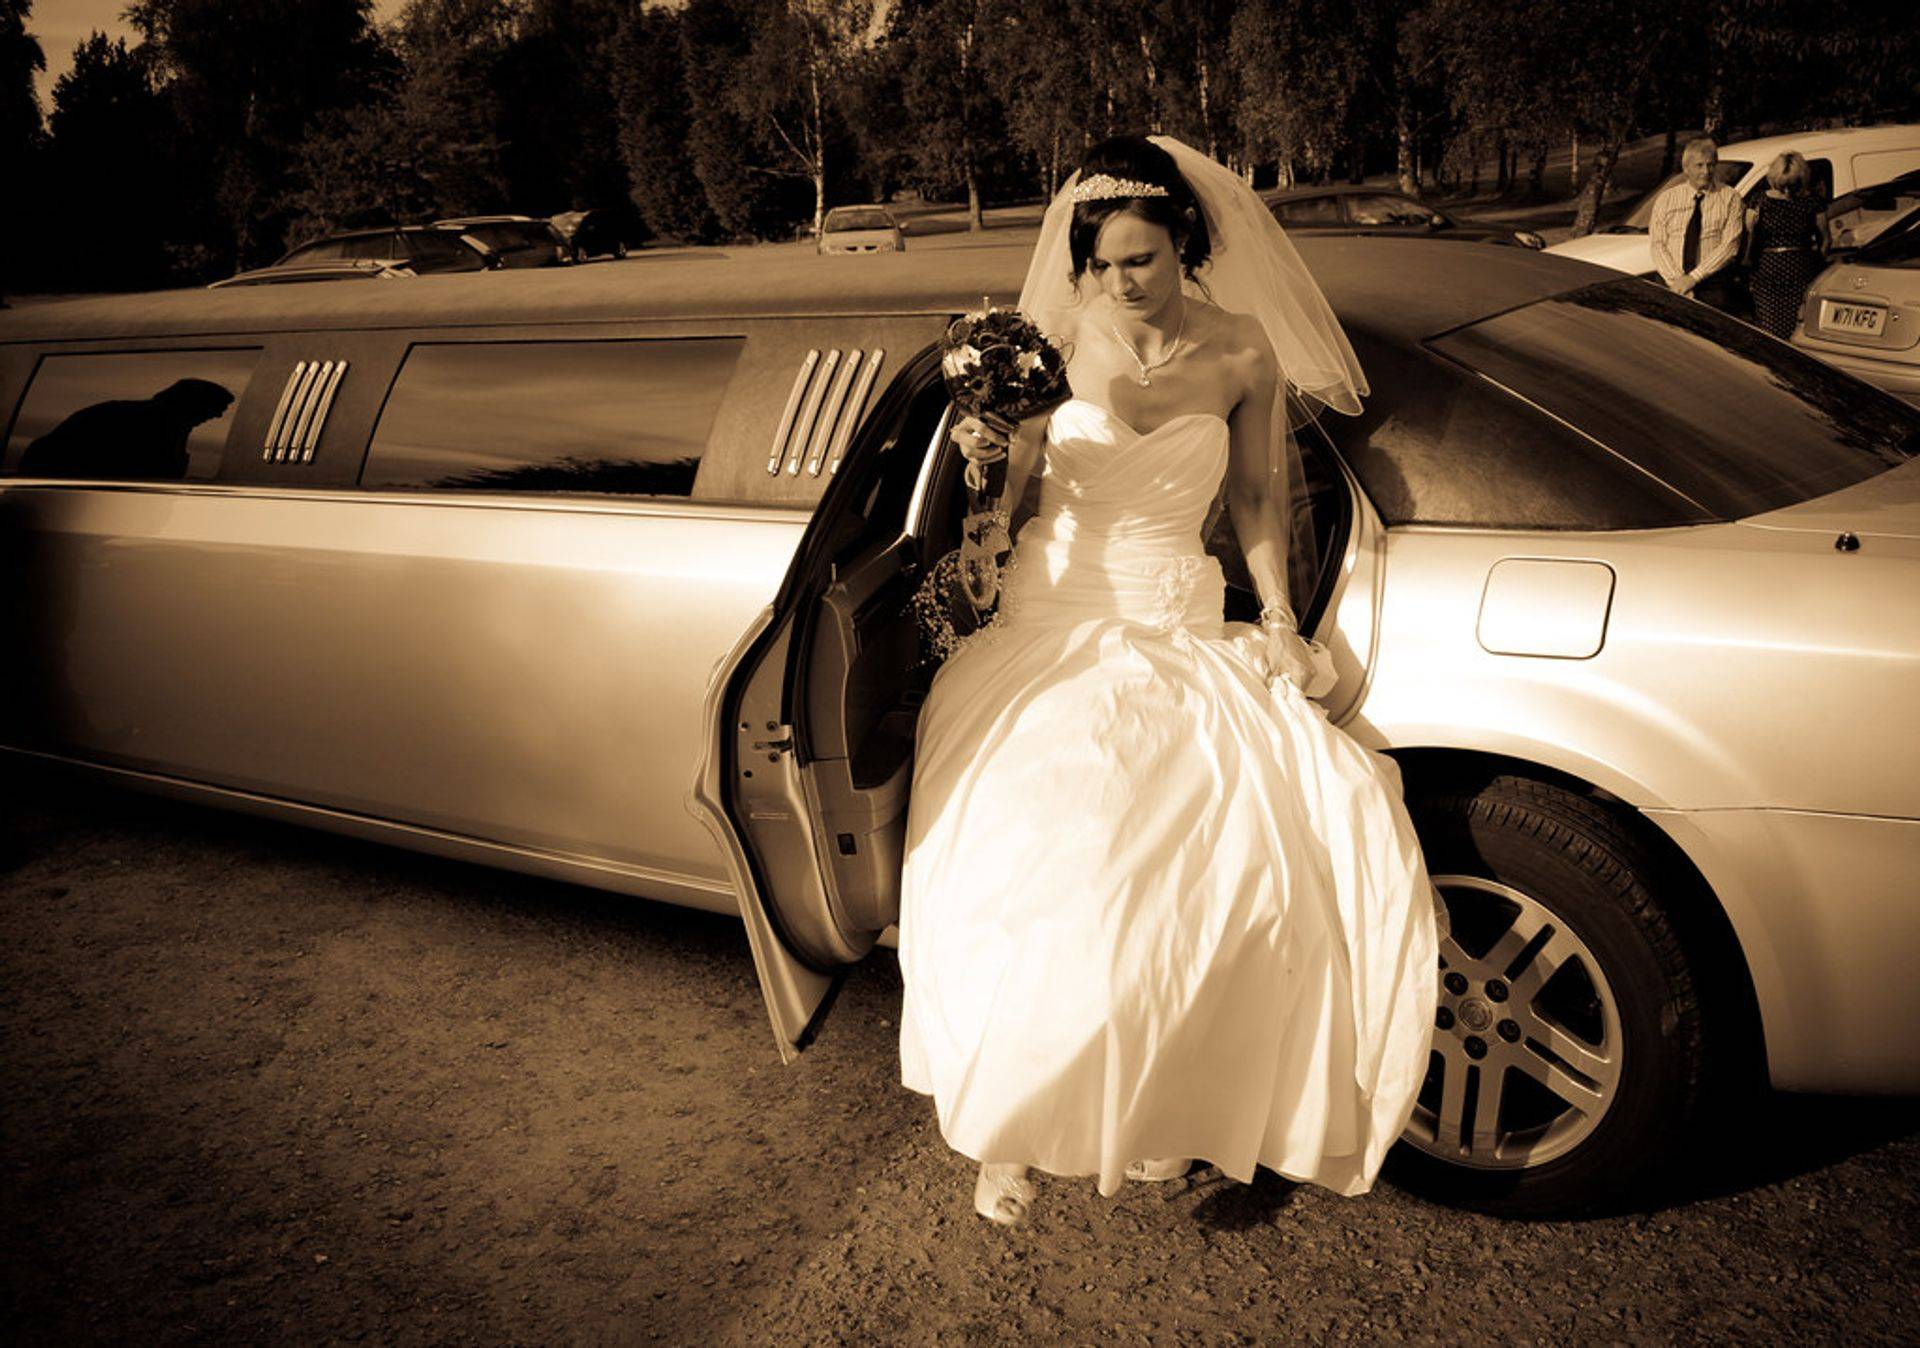 Weddings can be a hastle let us plan the ride!